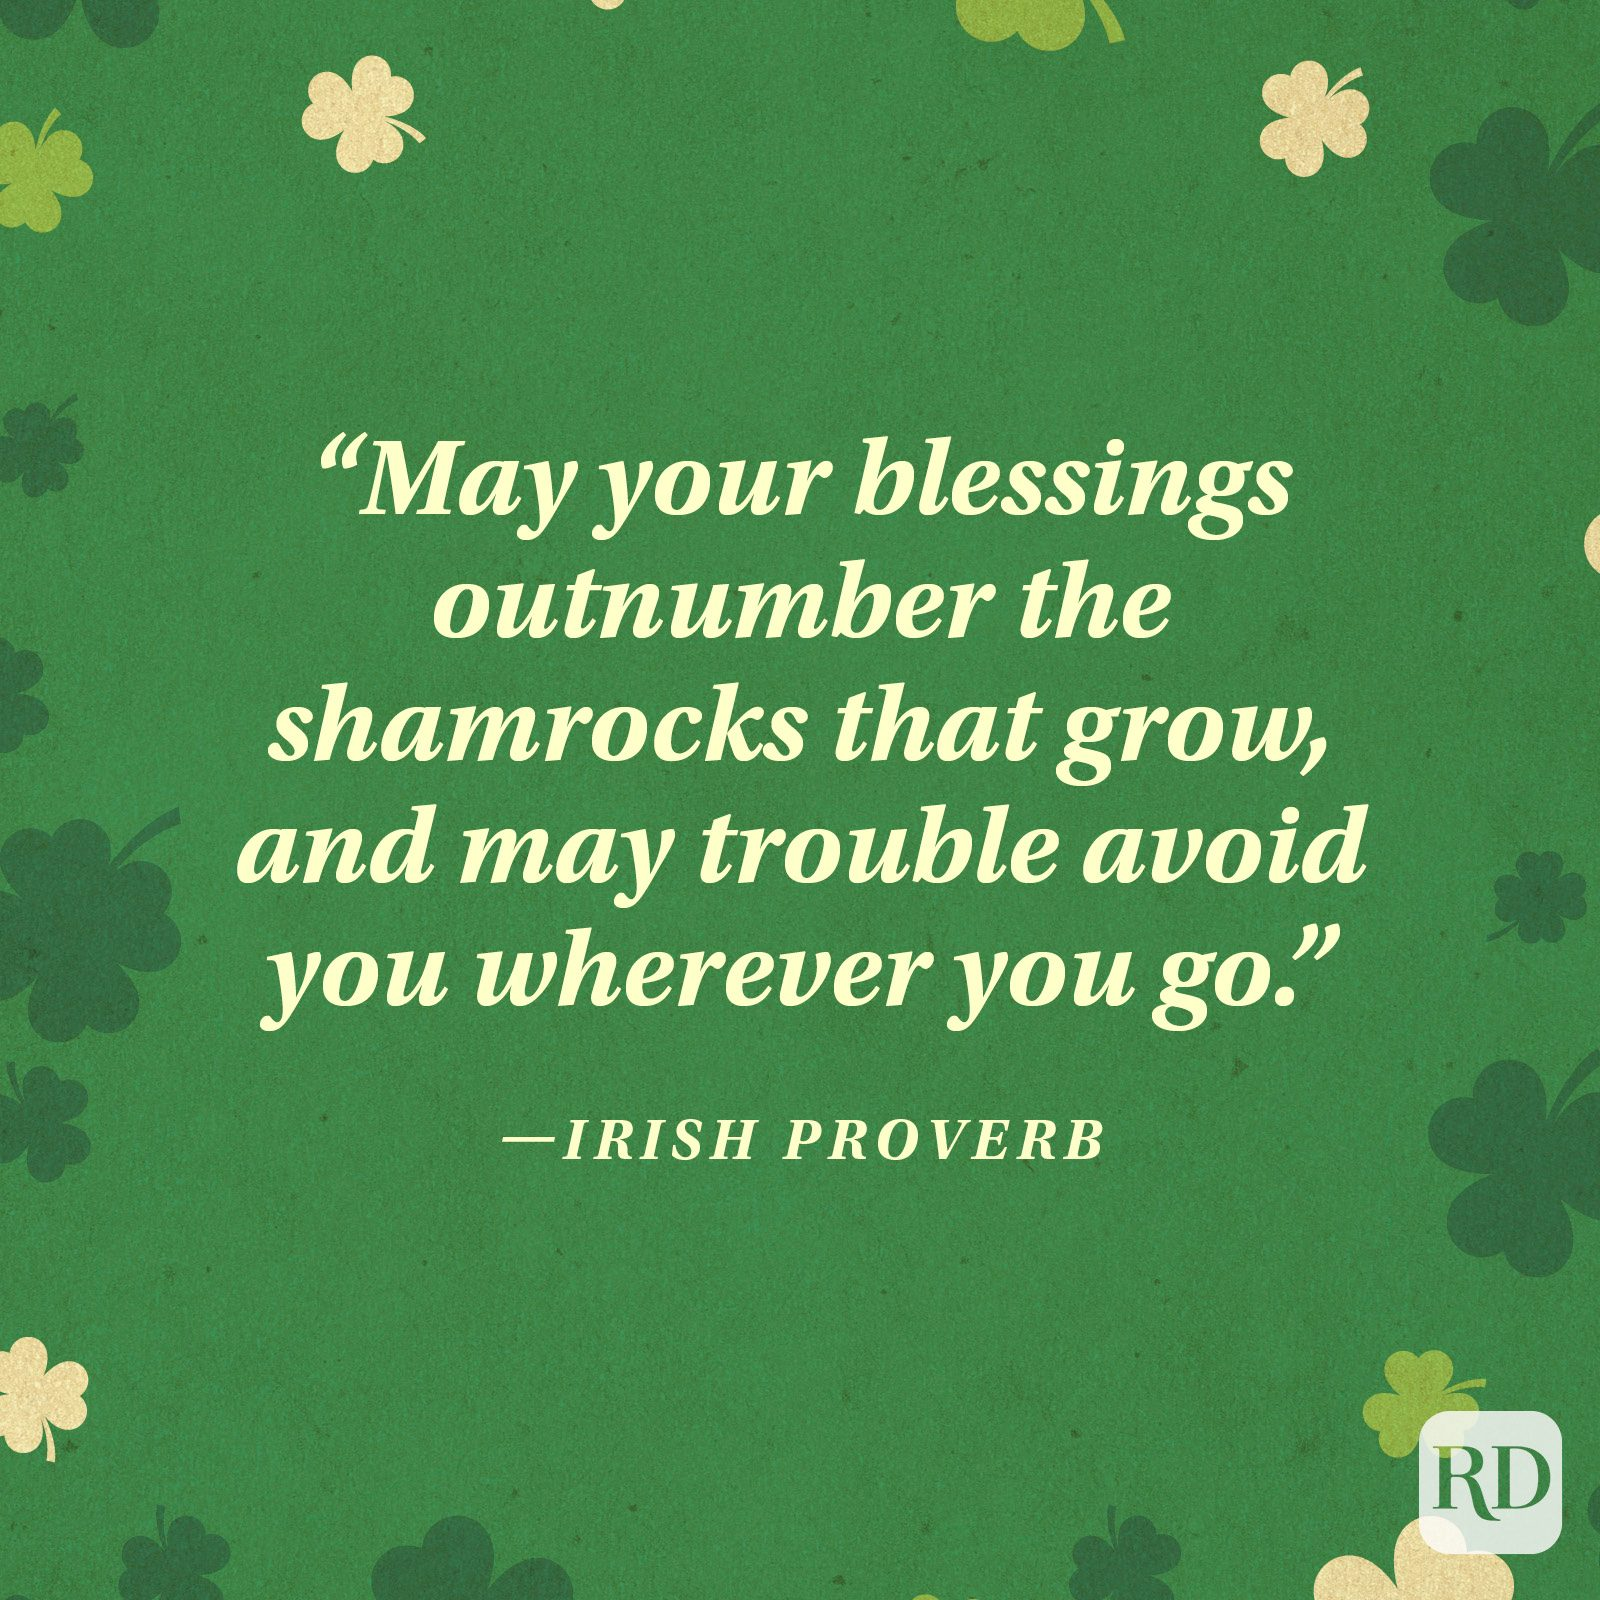 """May your blessings outnumber the shamrocks that grow, and may trouble avoid you wherever you go."" —Irish blessing"